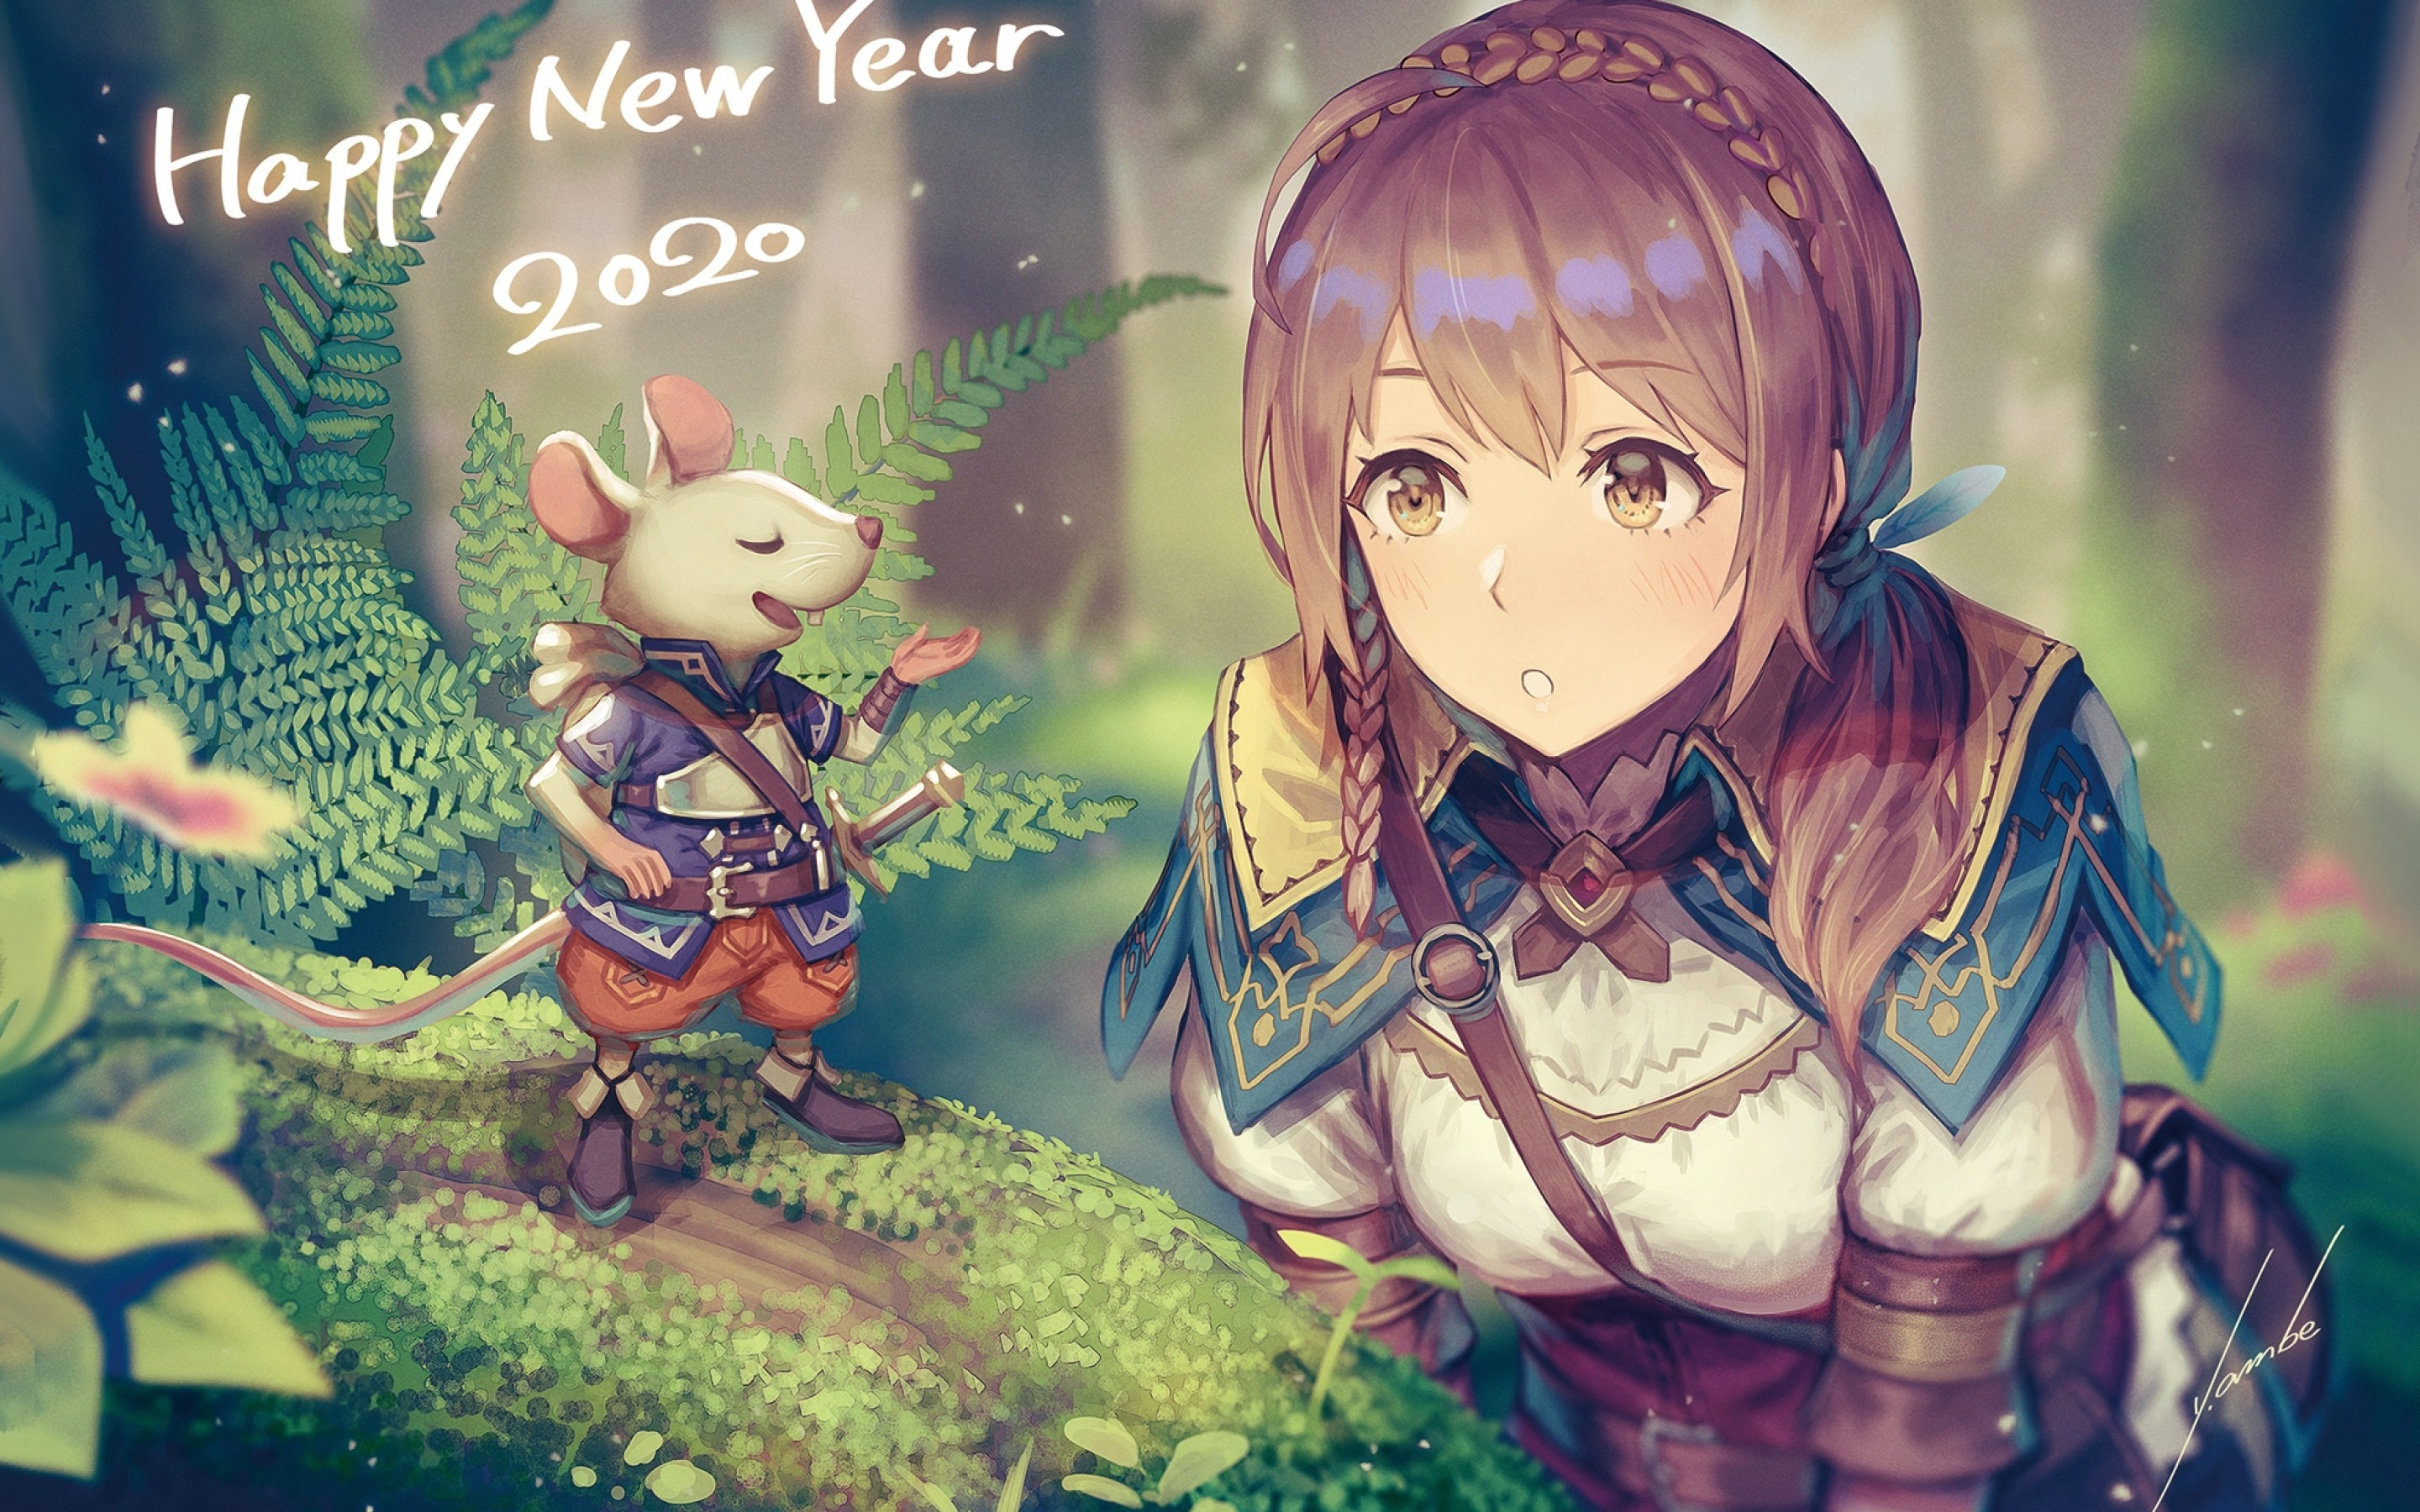 Download 2880x1800 Anime Girl Adventurer Forest Light Armor 2880x1800